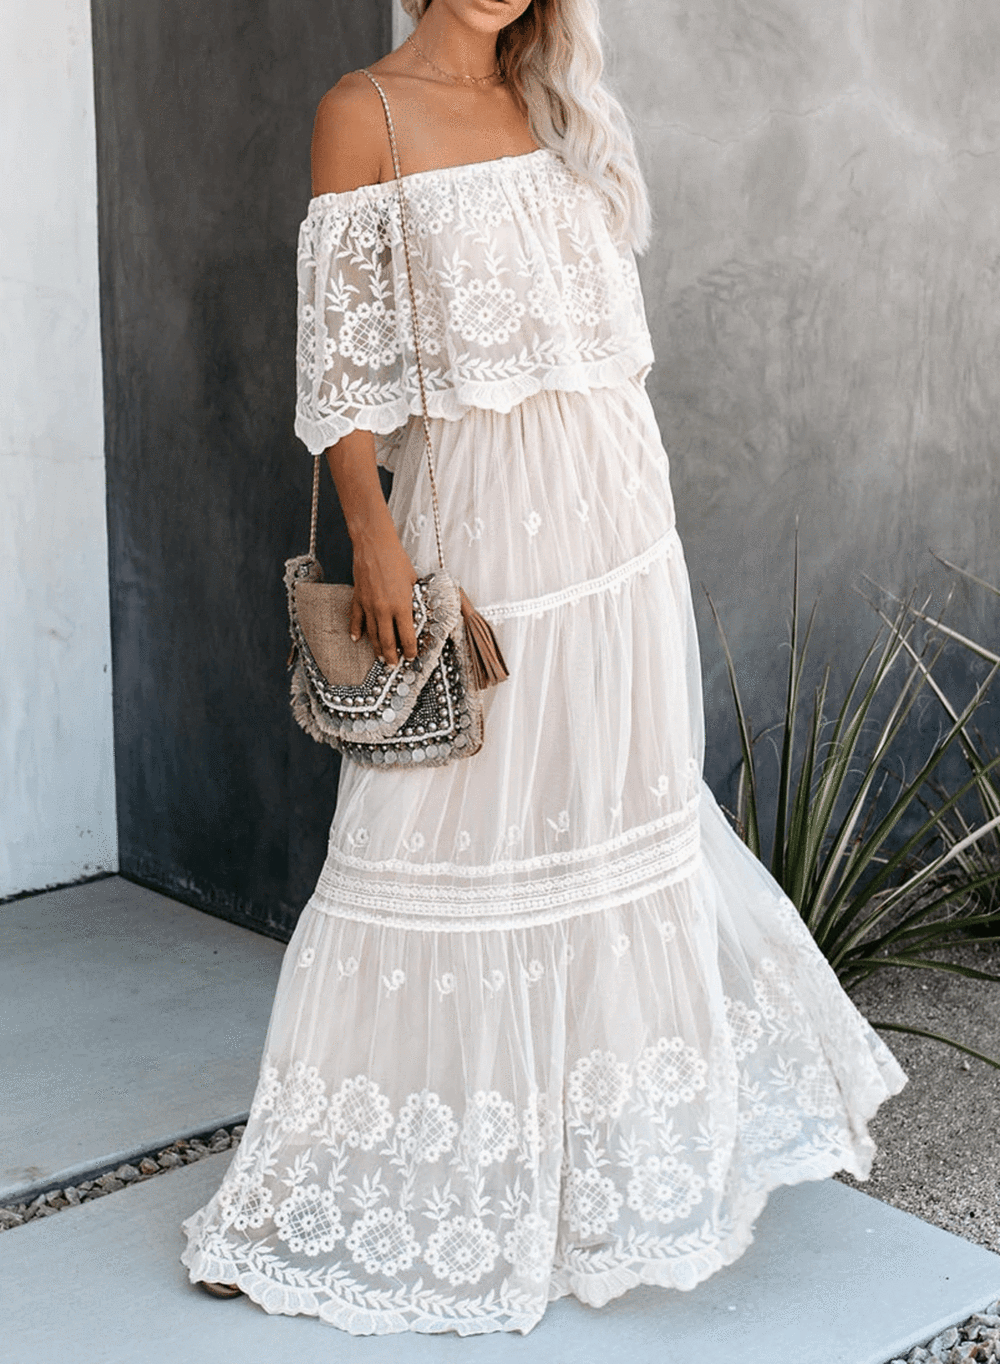 Off The Shoulder Lace Maxi Dress Lovetocute White Lace Maxi Dress White Lace Maxi Maxi Dress [ 1364 x 1000 Pixel ]